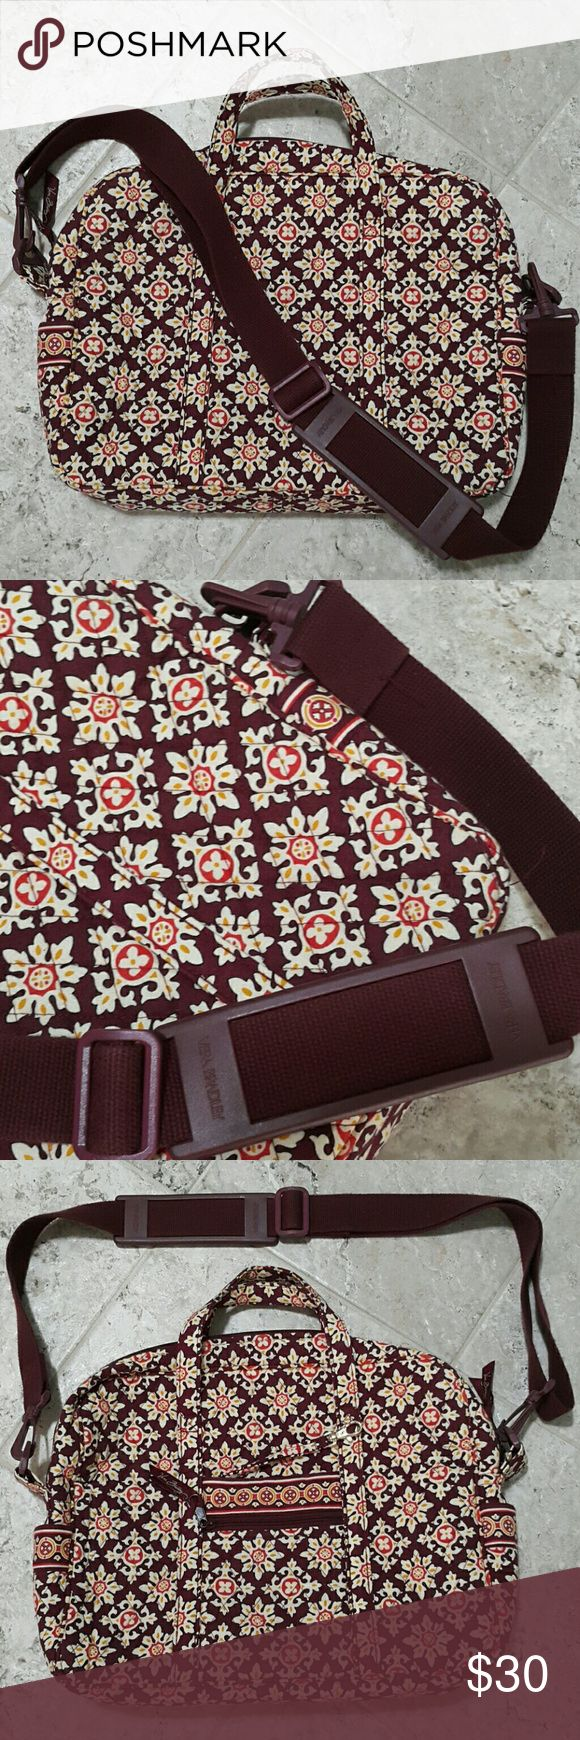 """VERA BRADLEY Laptop Bag Great condition. Long strap is adjustable 50"""".  L16"""" x H11"""" x W3"""". 1 large zipper compartment insid. 3 pockets for mouse,  note,... Inside. Outside with small zipper pocket and other pocket. Key hook. Quilted material. Soft,  safe and convenience wear. Vera Bradley Bags Laptop Bags"""